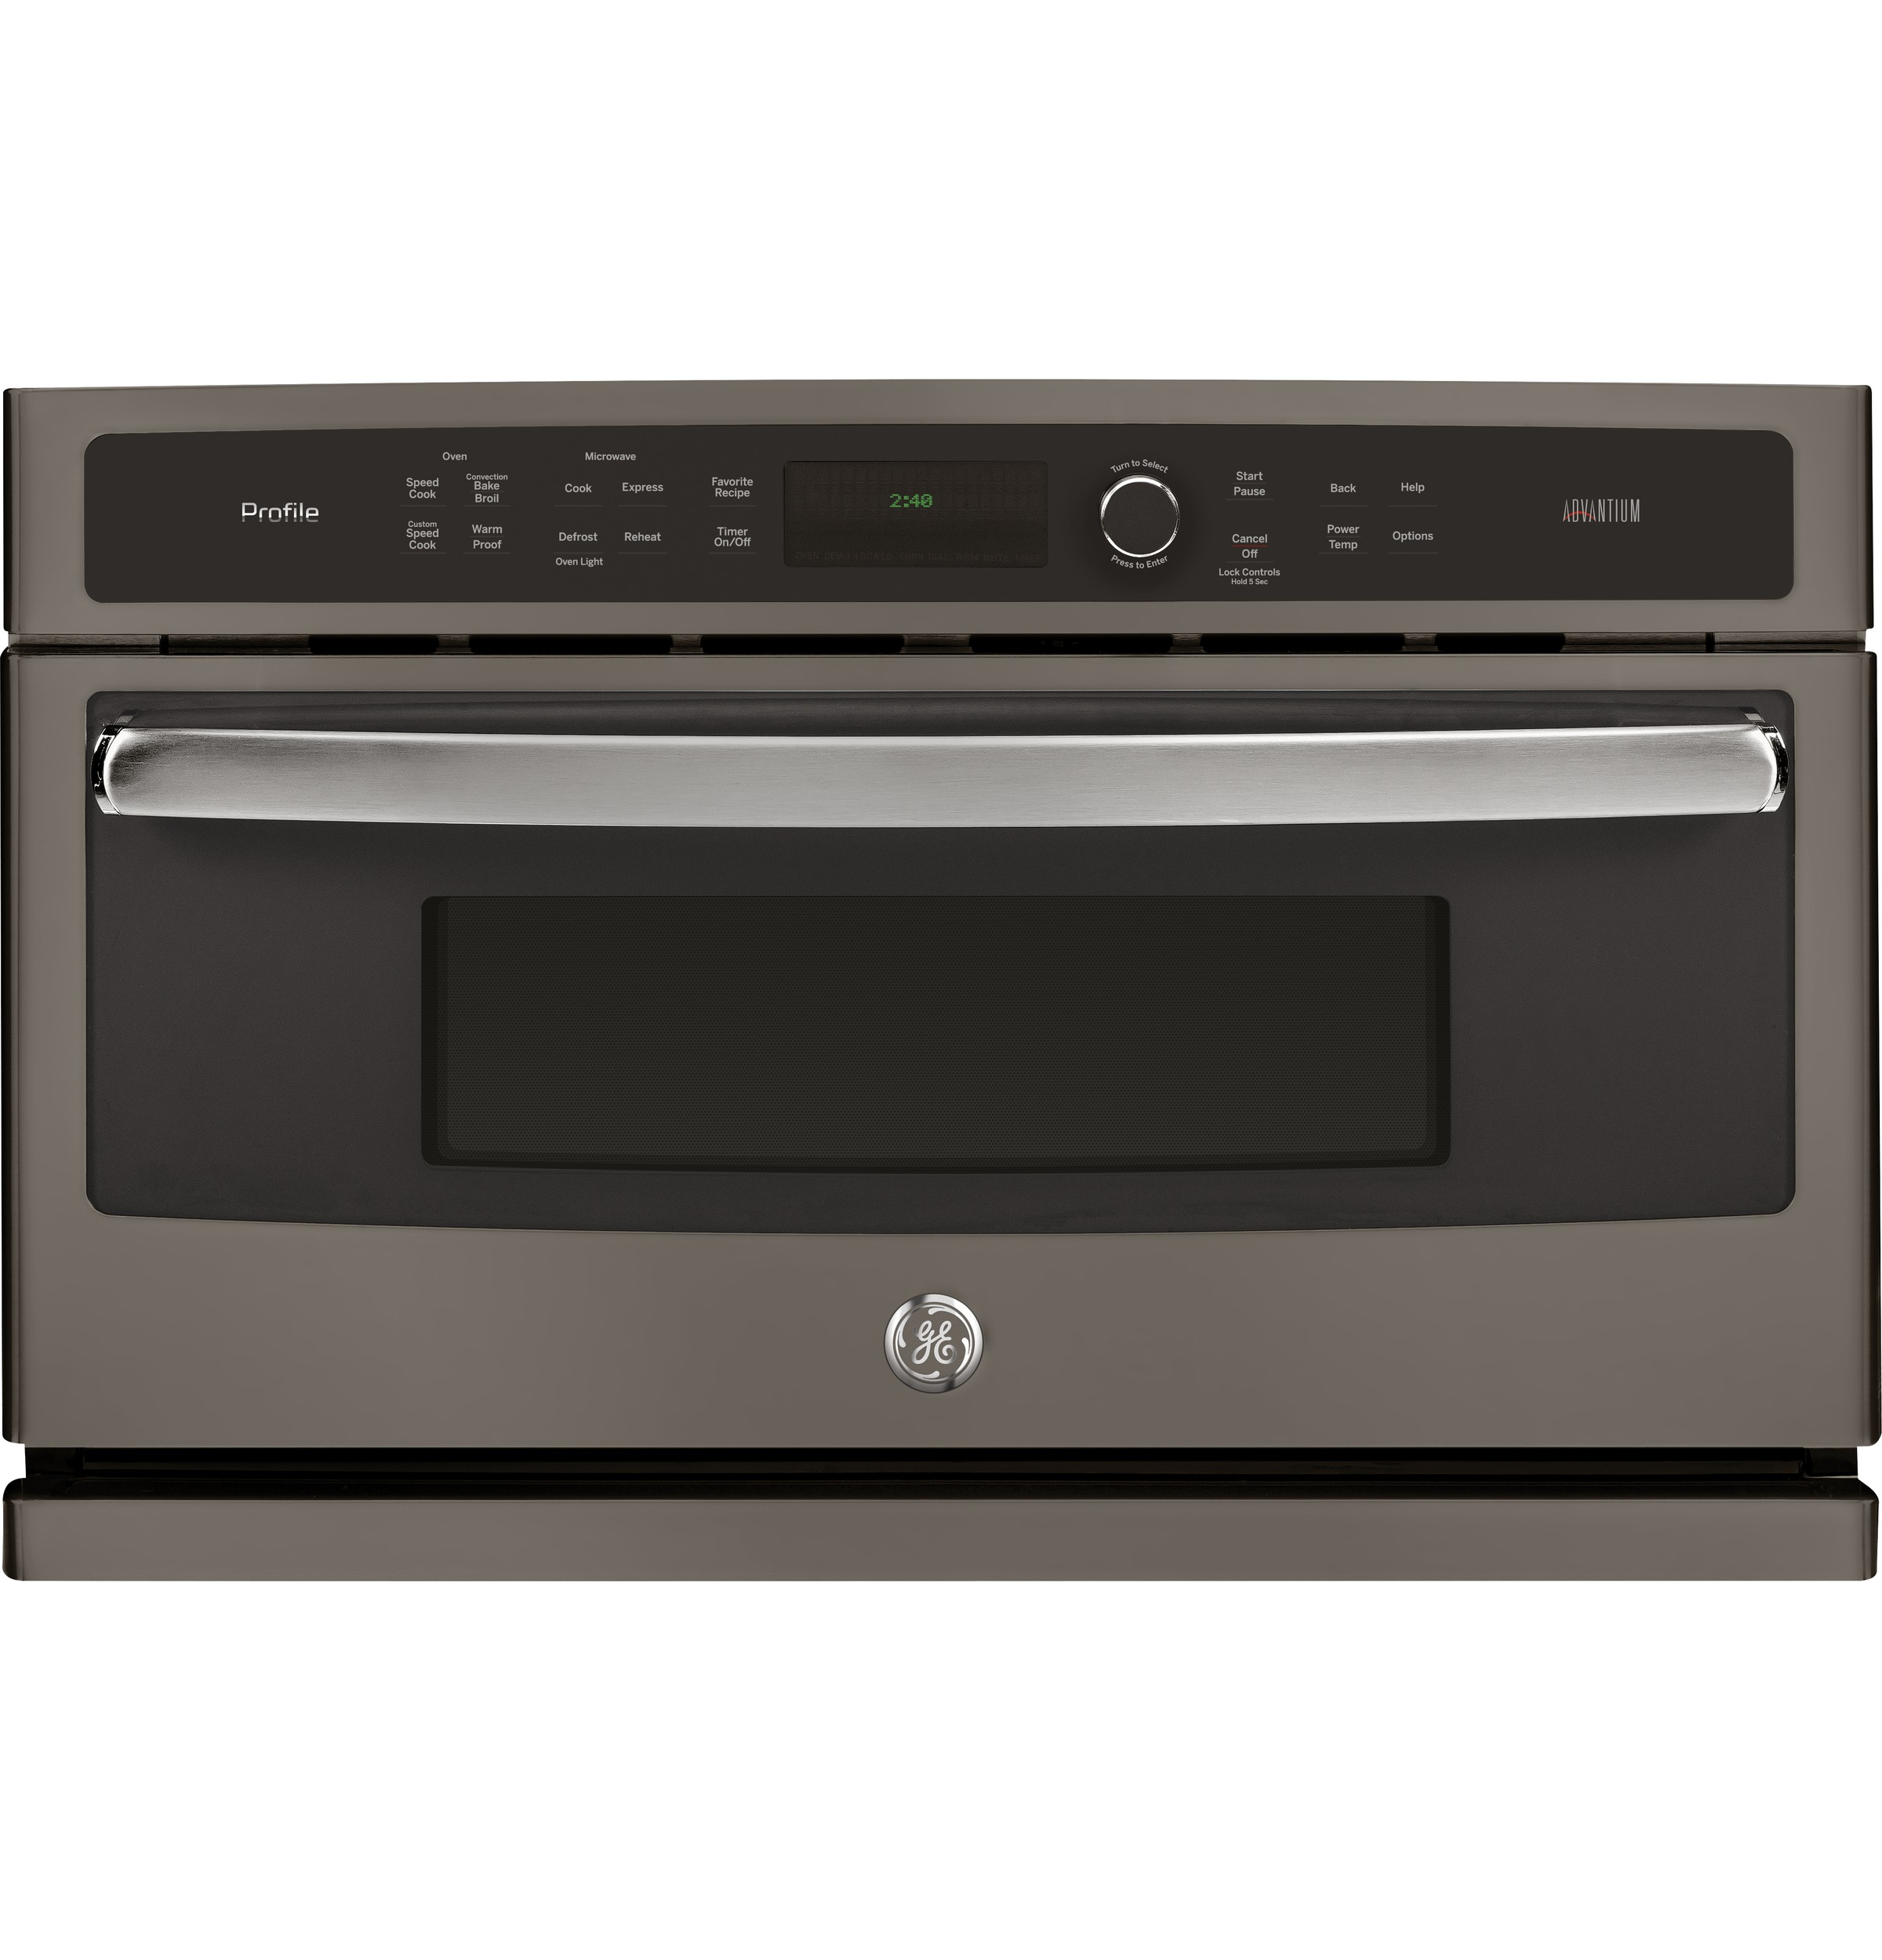 Profile GE Profile™ 30 in. Single Wall Oven with Advantium® Technology